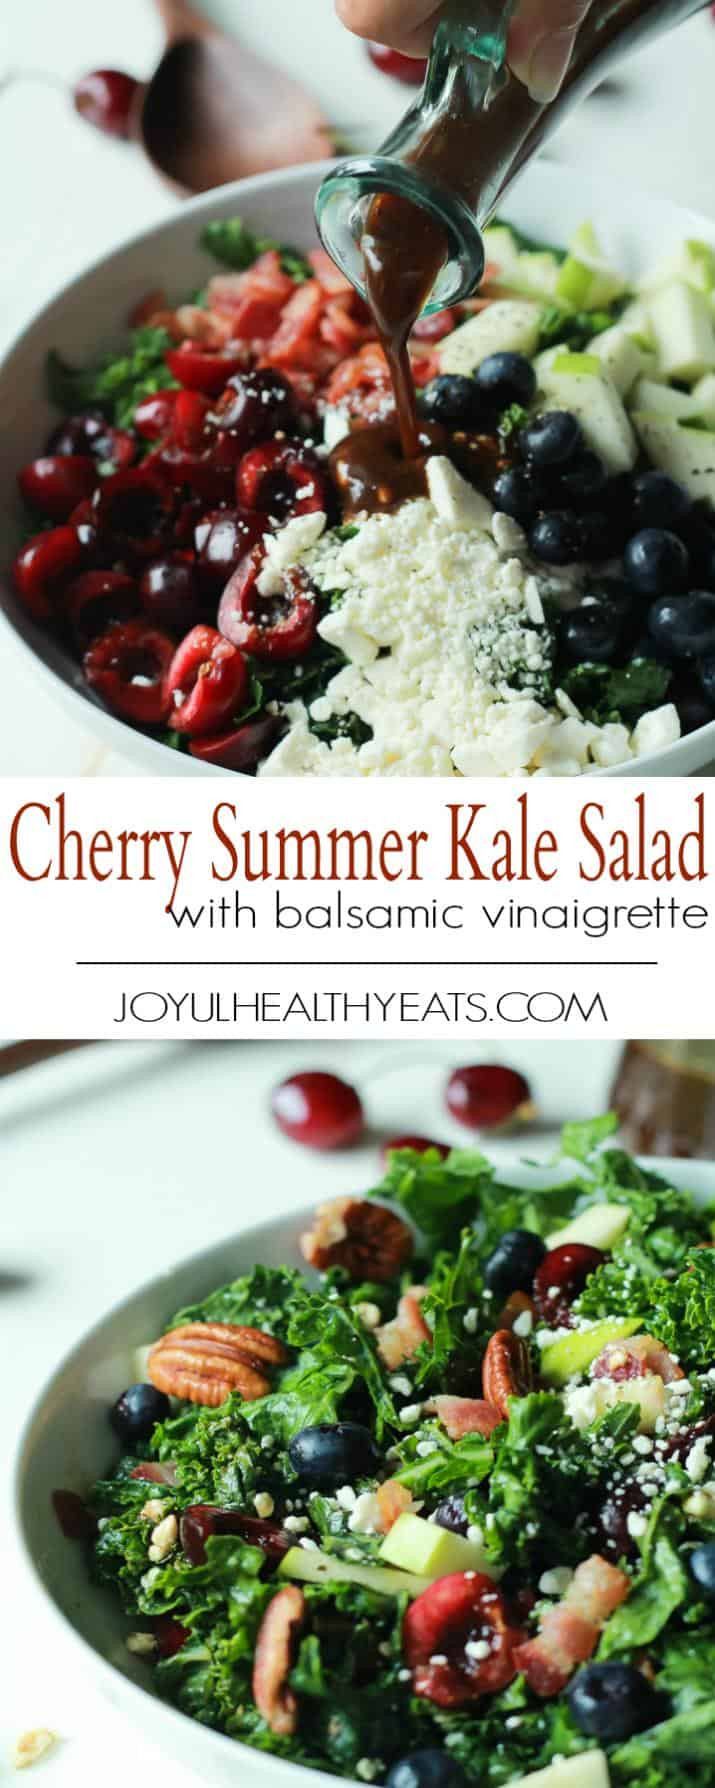 Pinterest collage for Cherry Summer Kale Salad with Balsamic Vinaigrette recipe